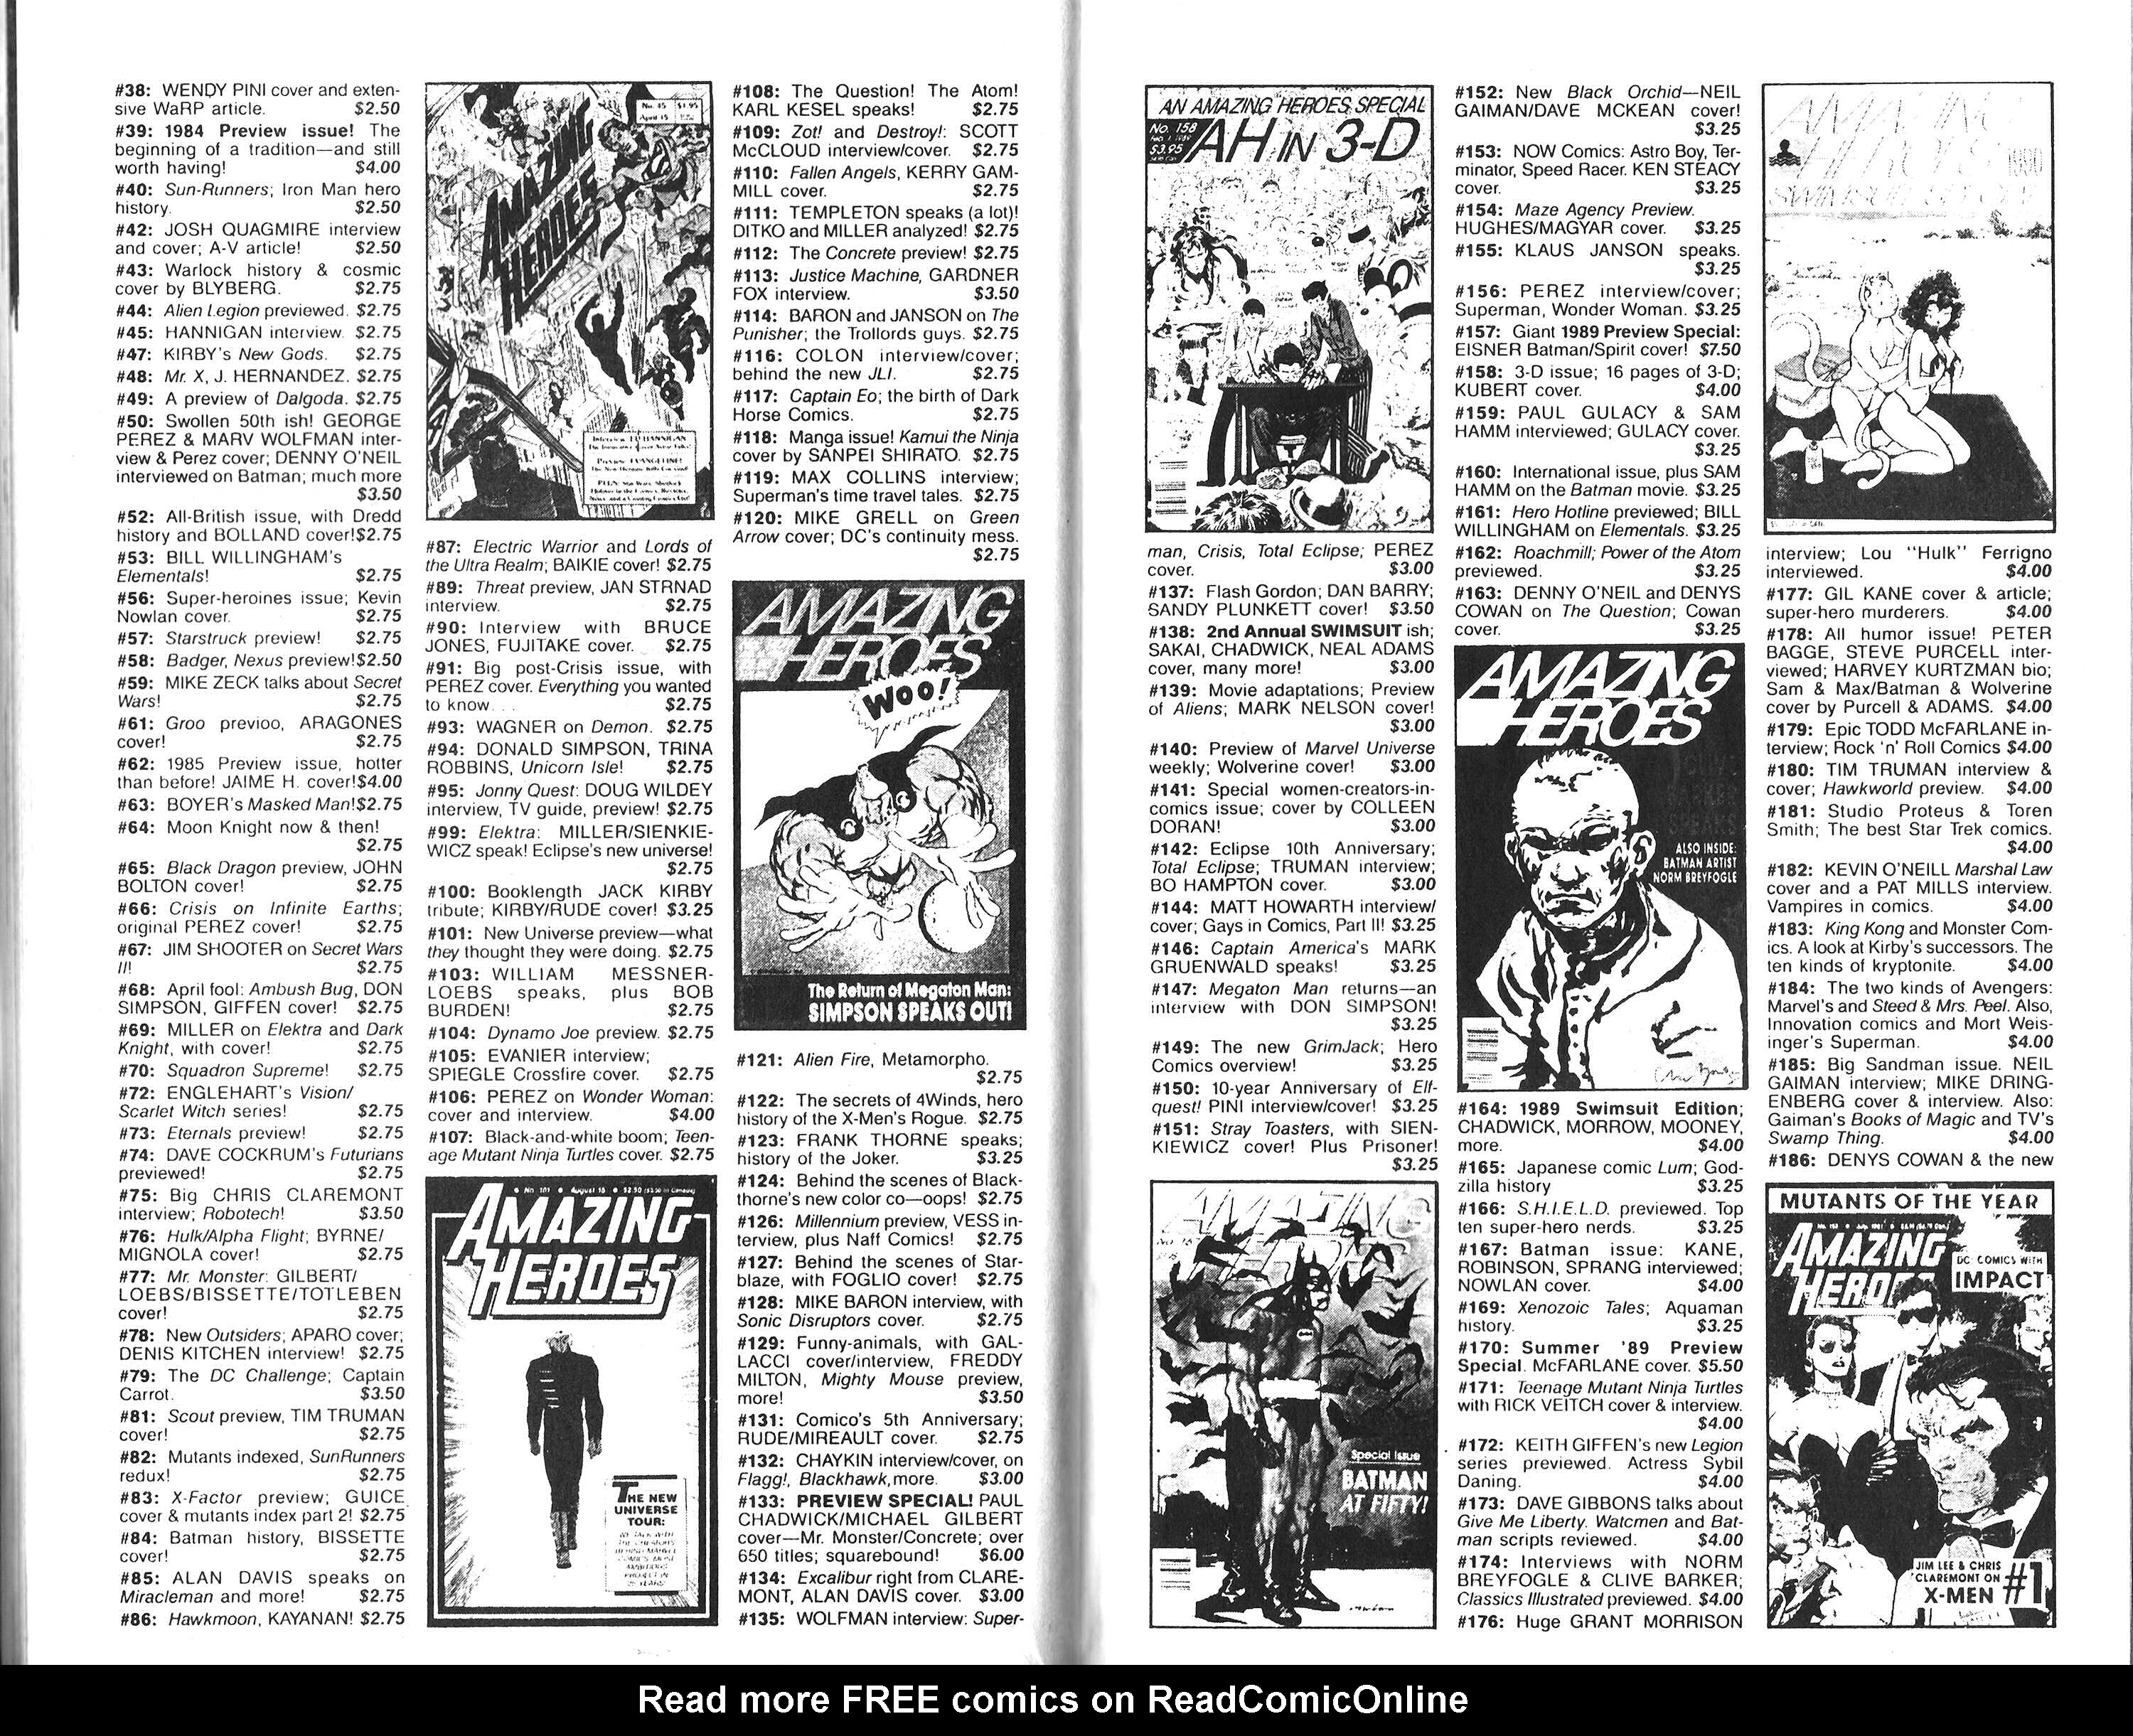 Read online Amazing Heroes comic -  Issue #204 - 36